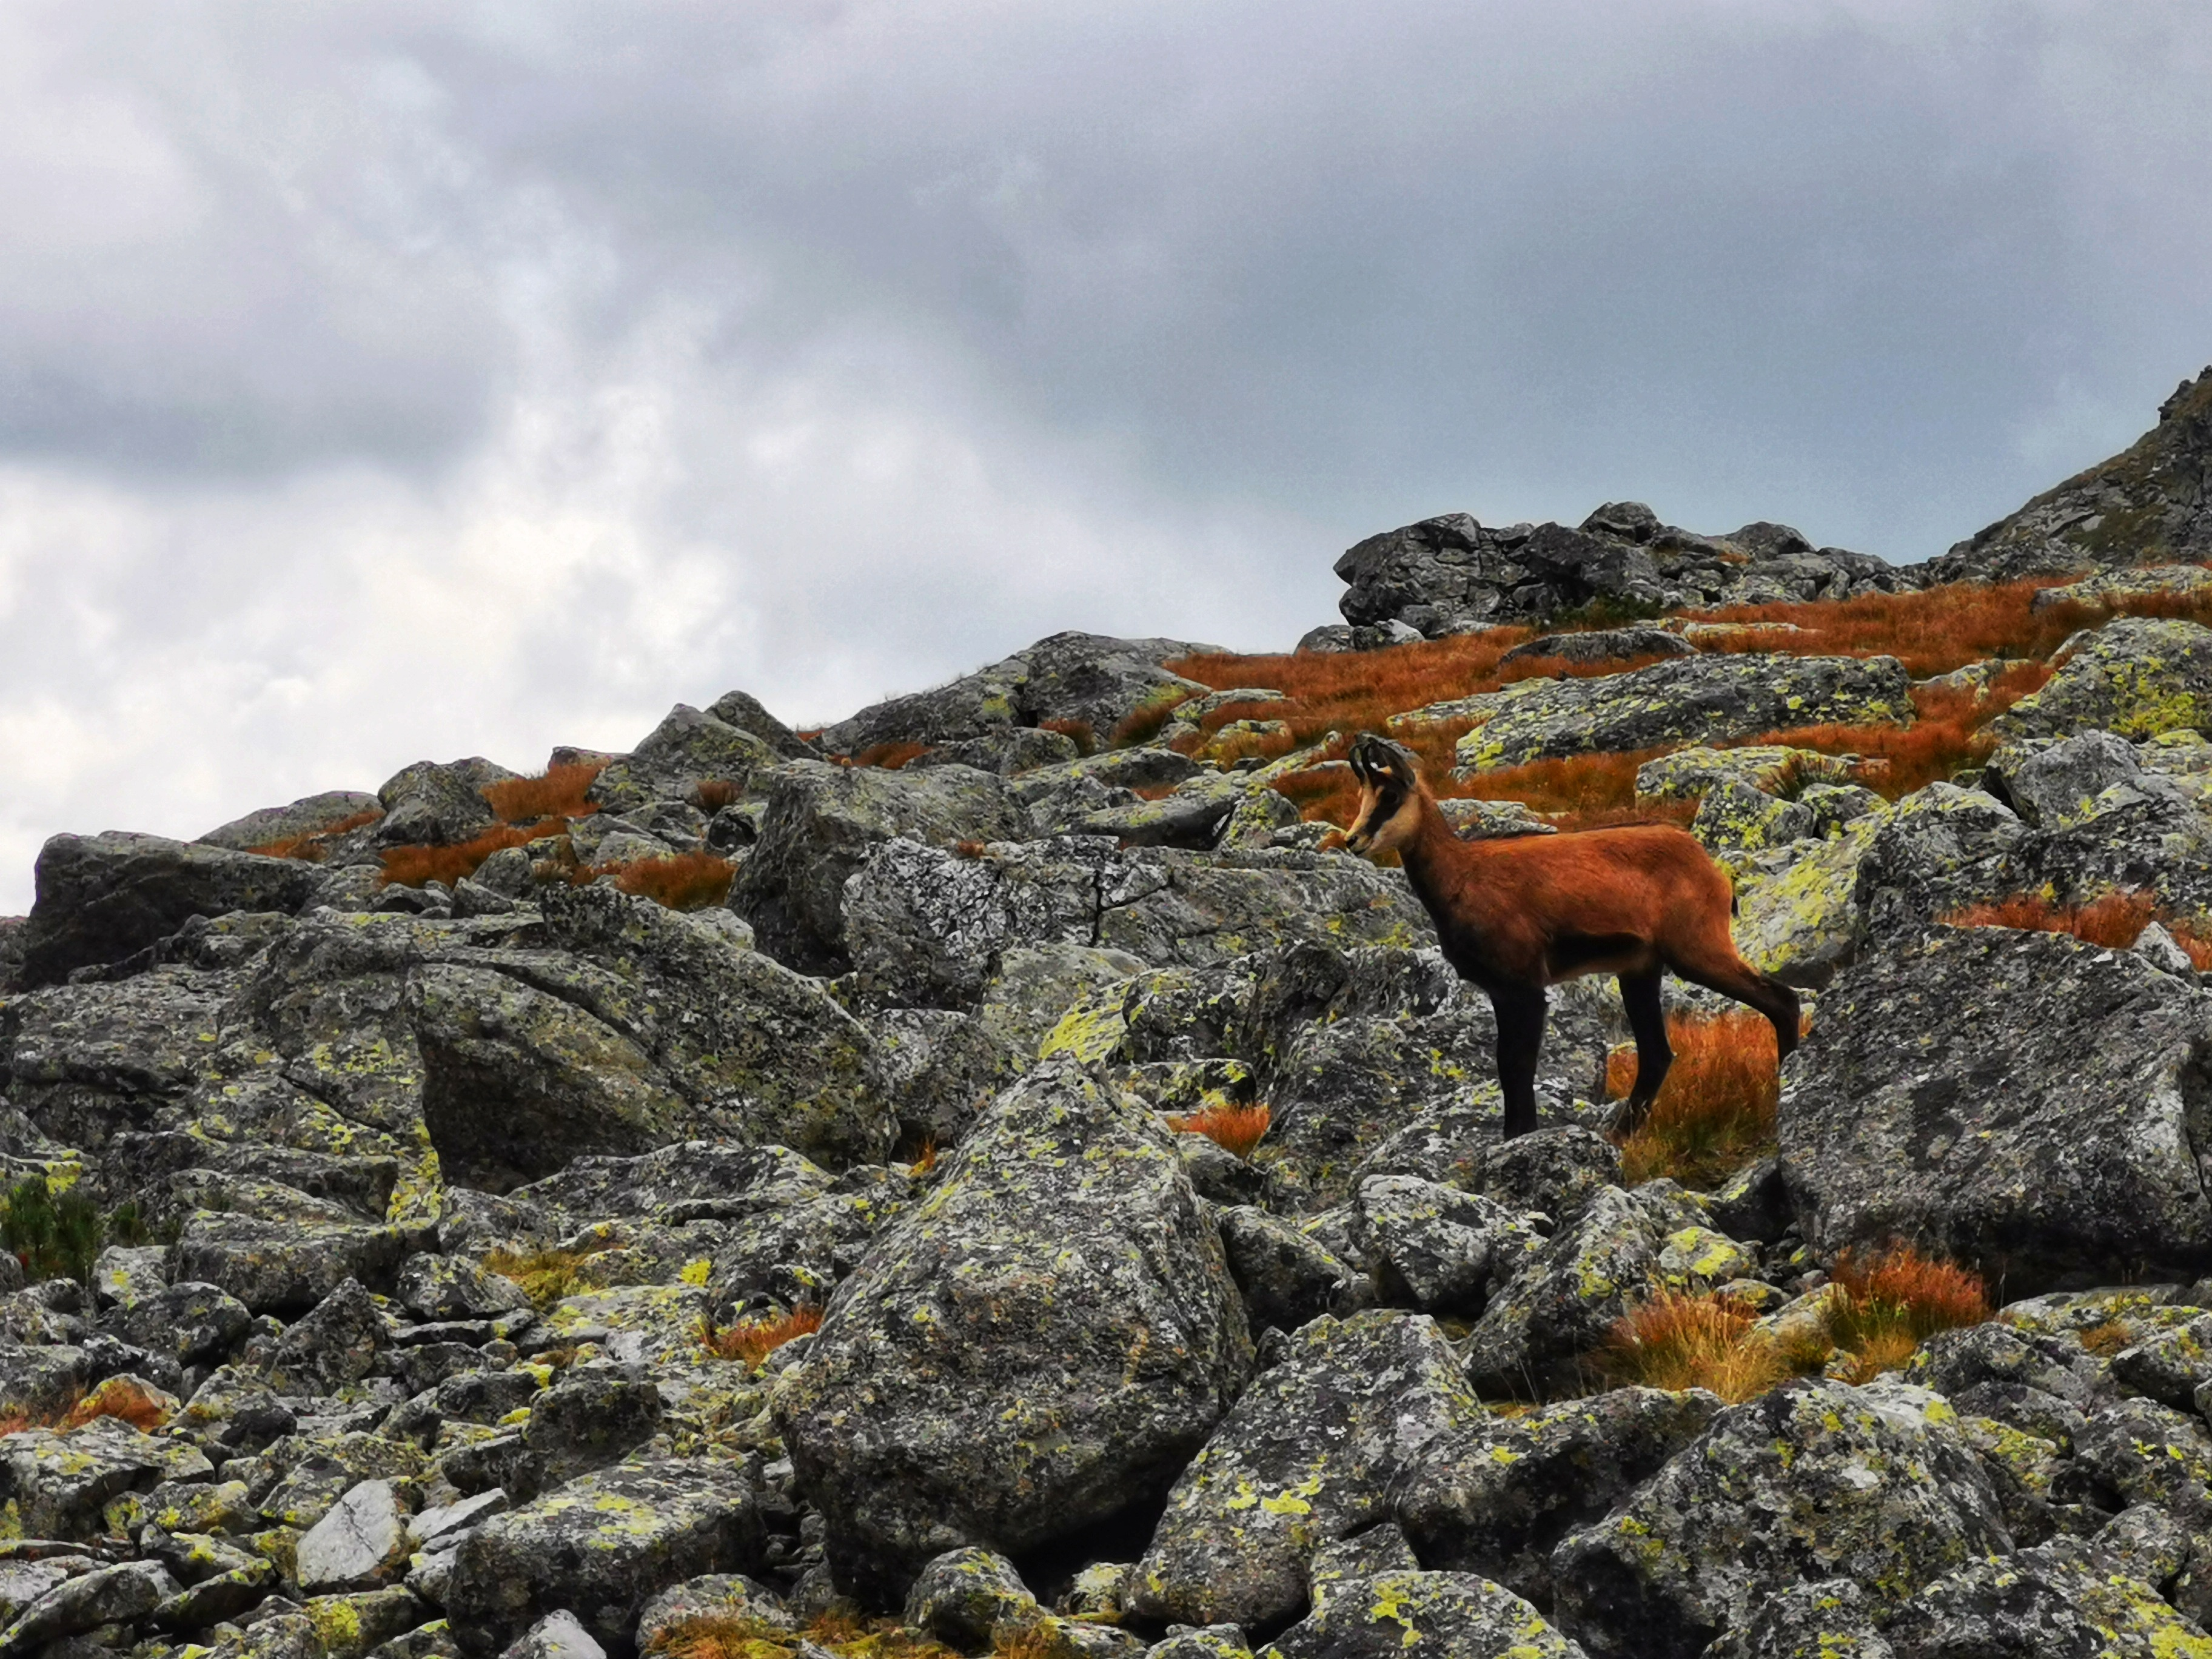 The Tatra chamois live only in the Tatra Mountains in Slovakia and Poland.